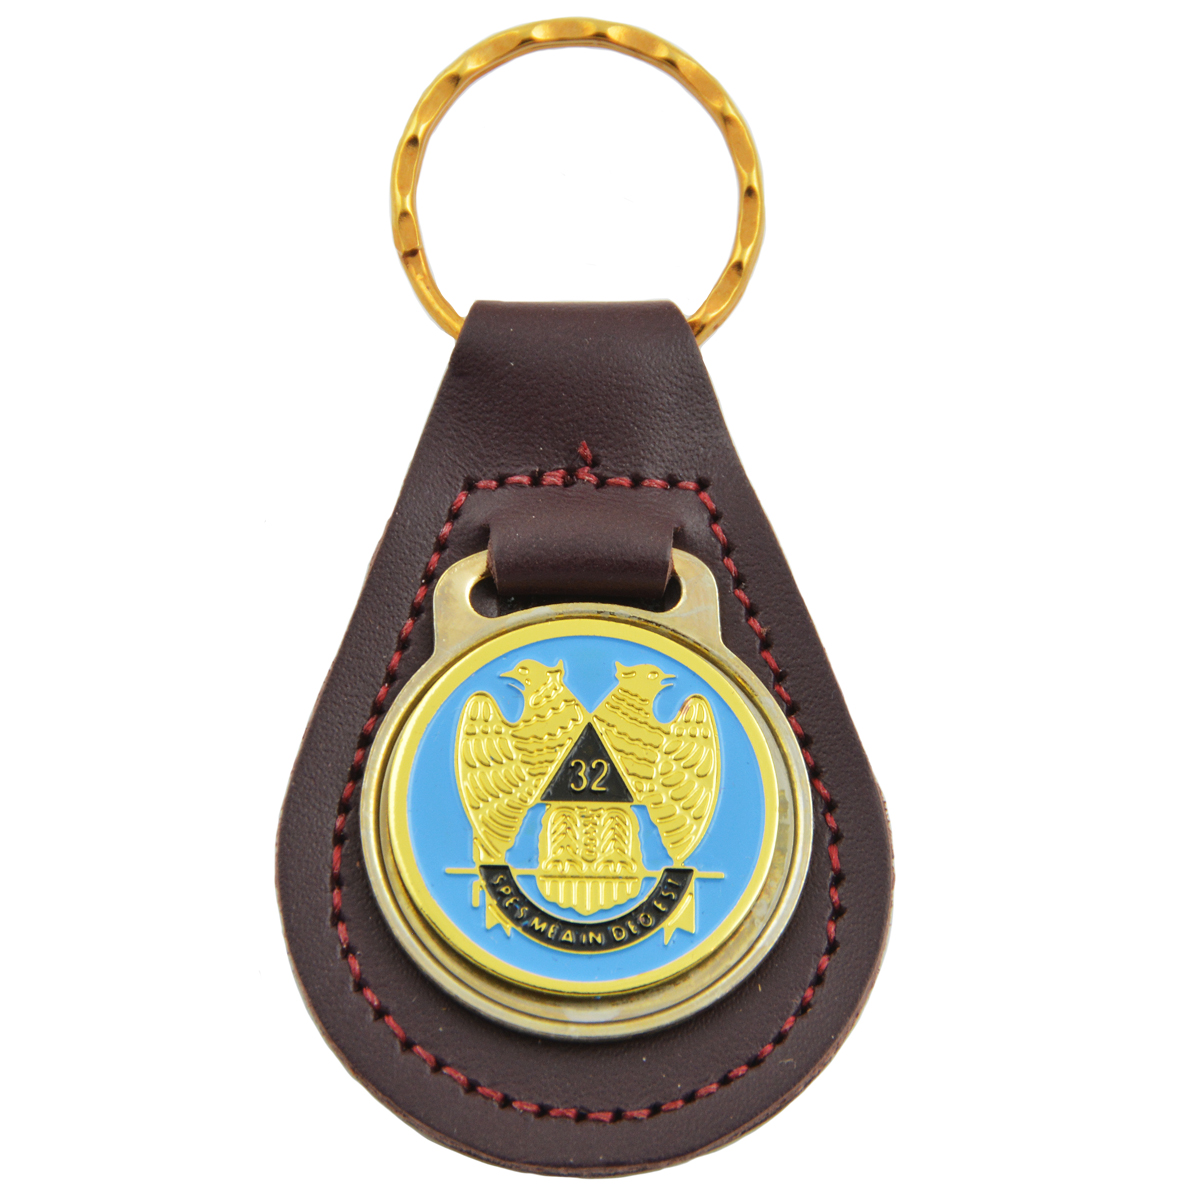 Prince Hall Masonic Regalia Grand Master Aprons Grand